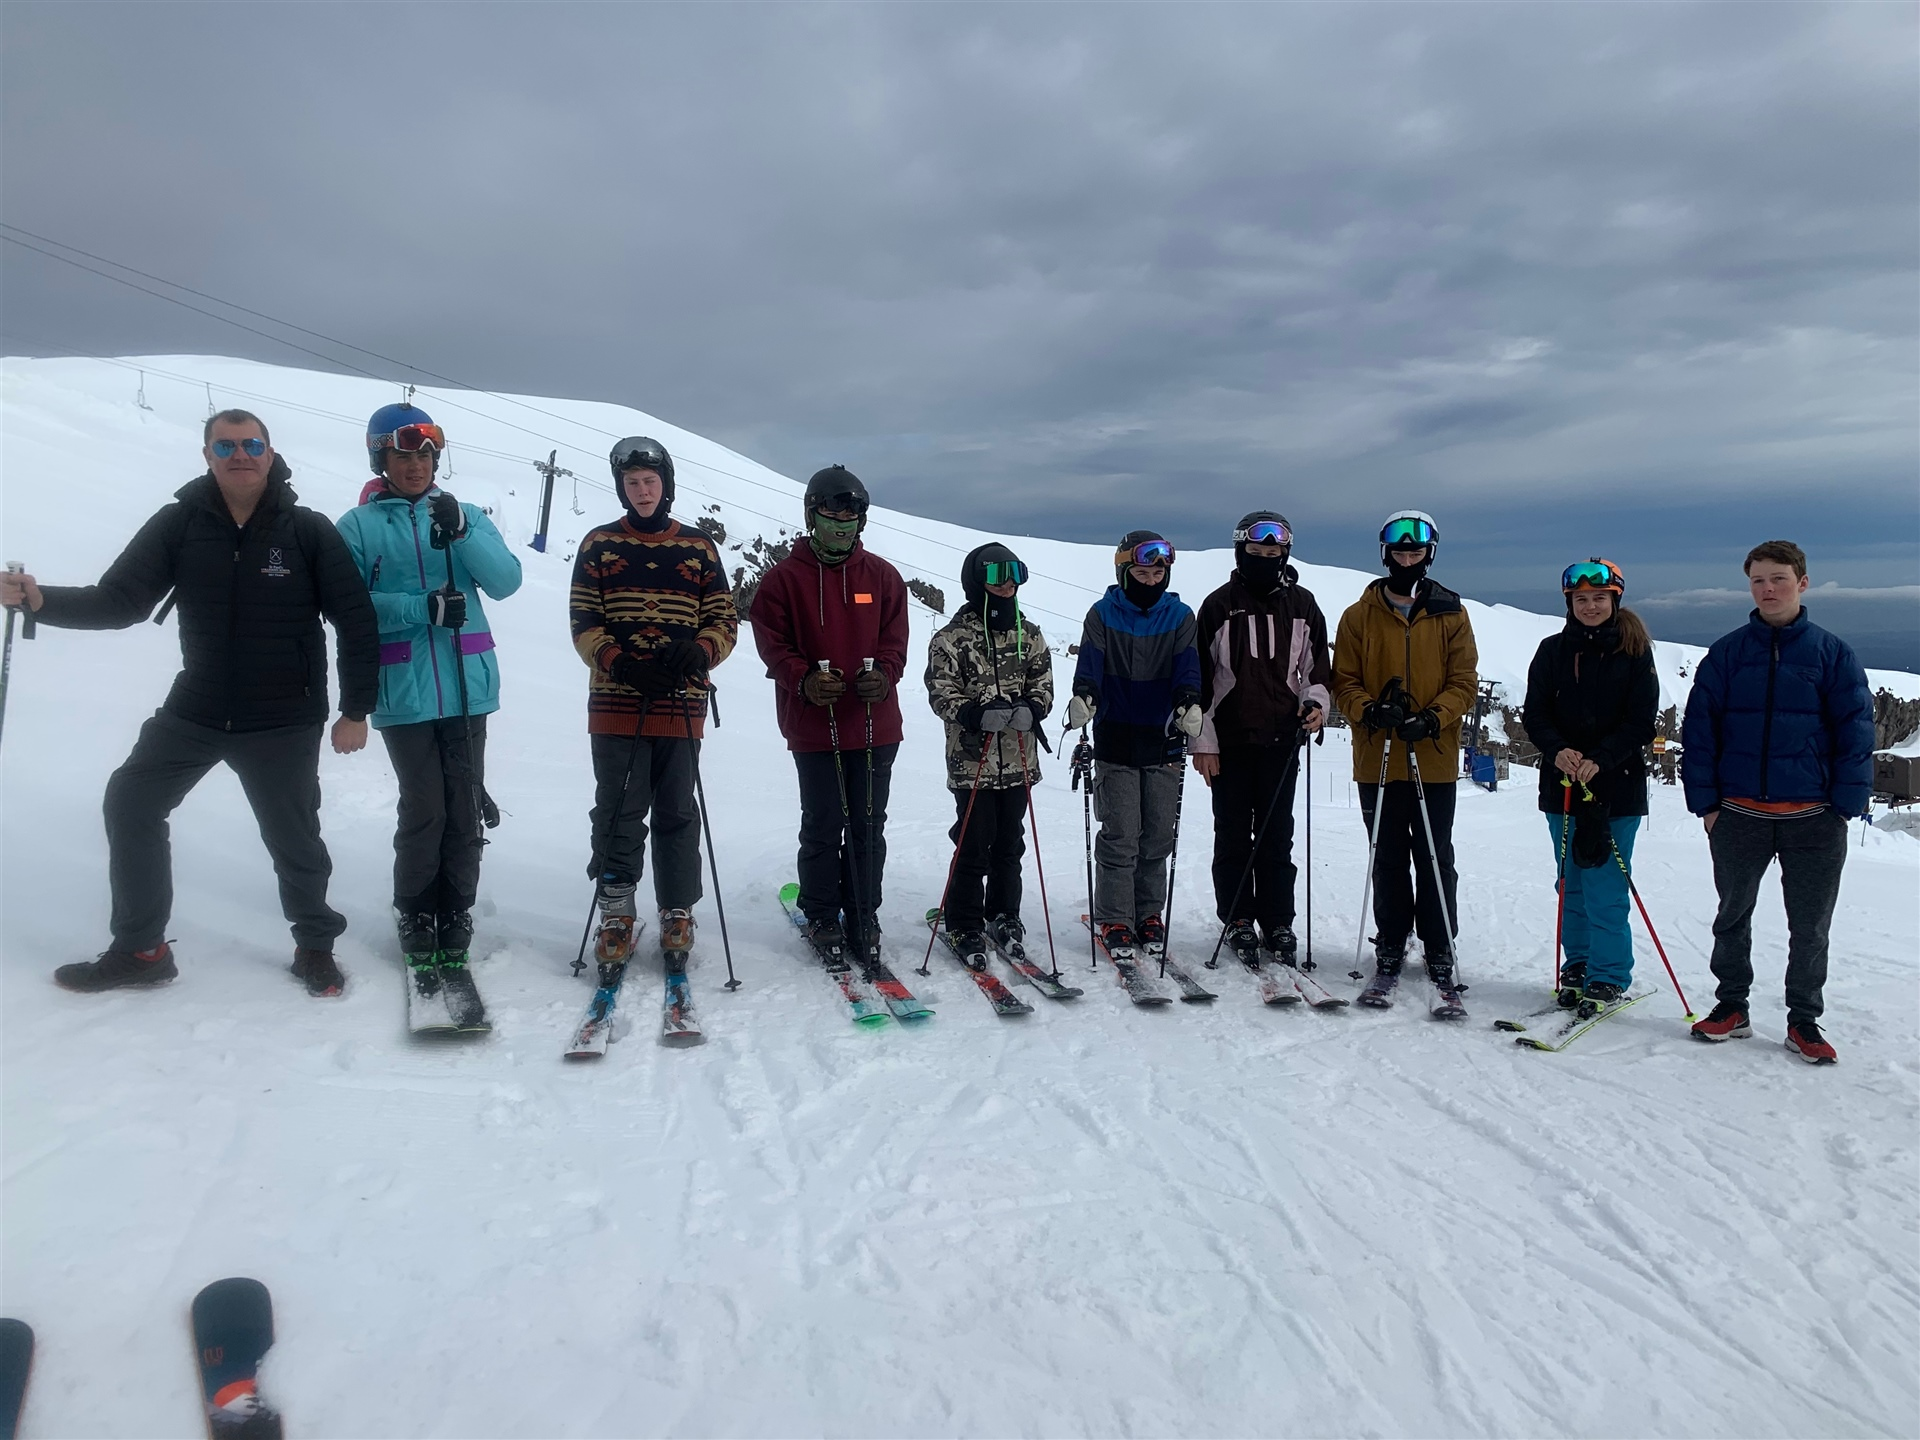 Skiers hit the slopes for Waikato champs